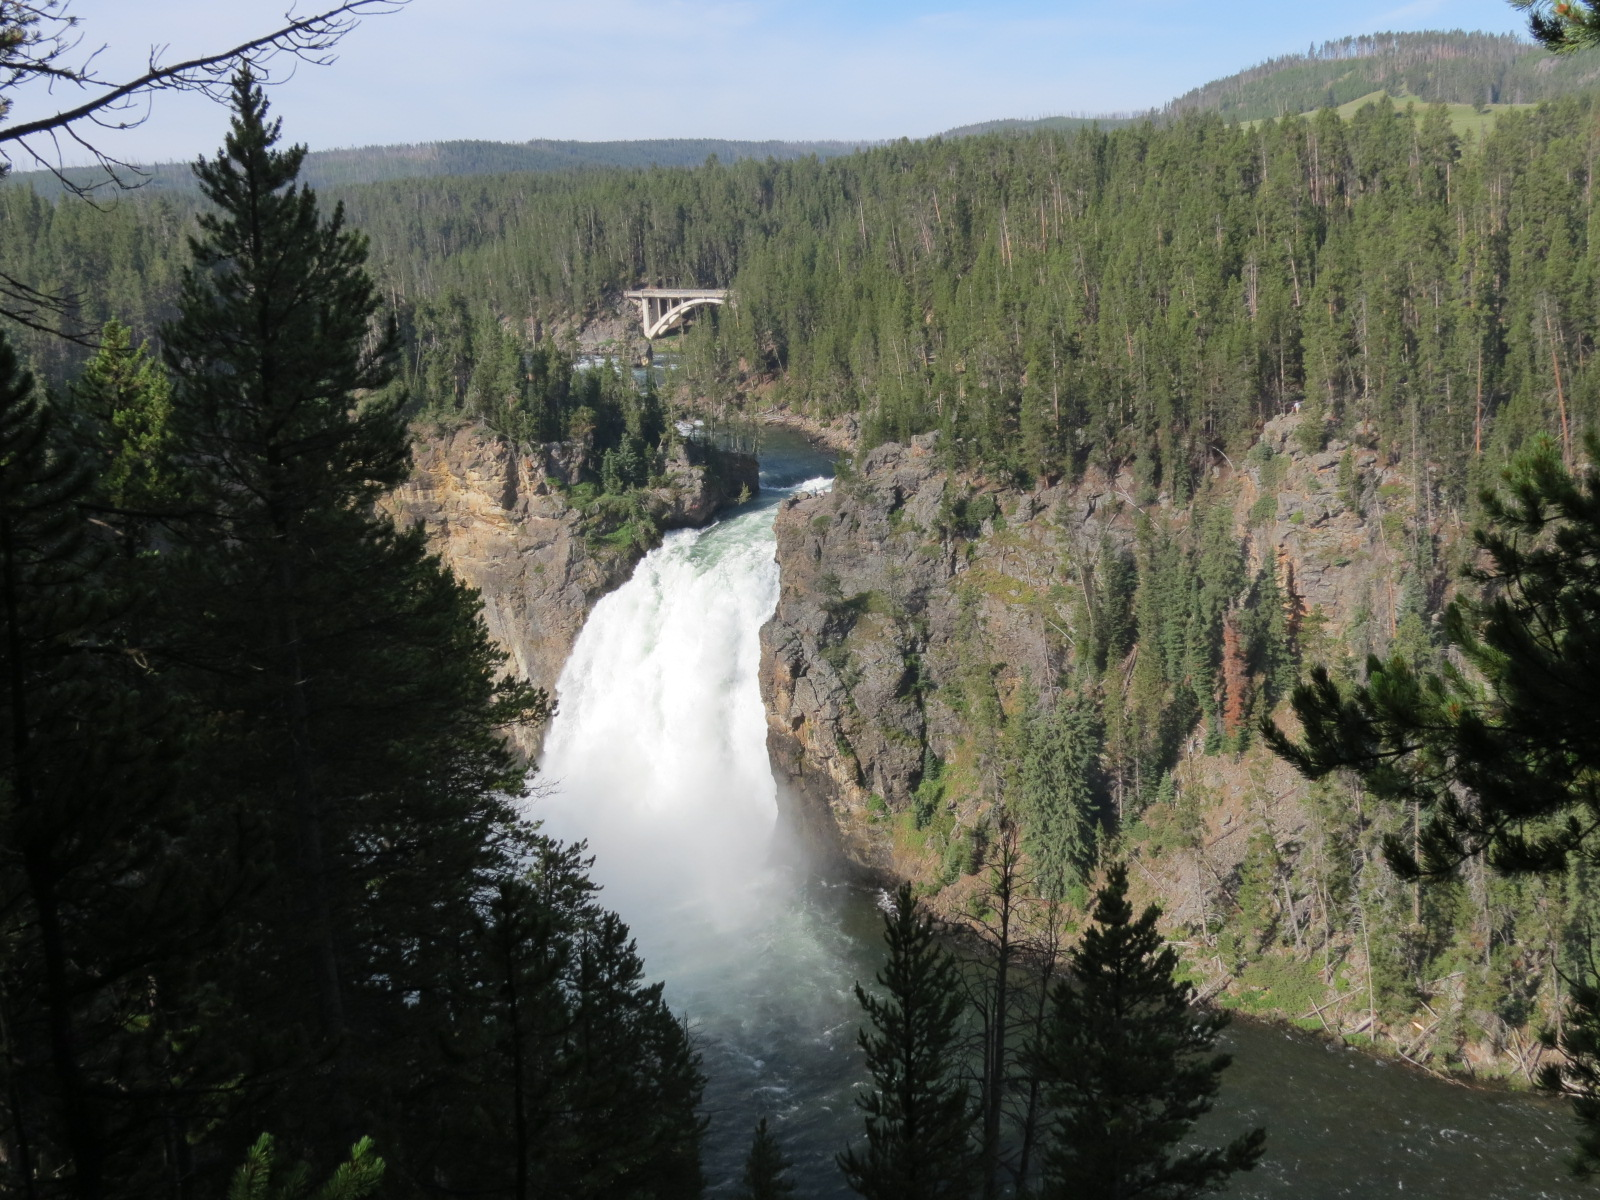 Upper Falls, Canyon Village area of Yellowstone